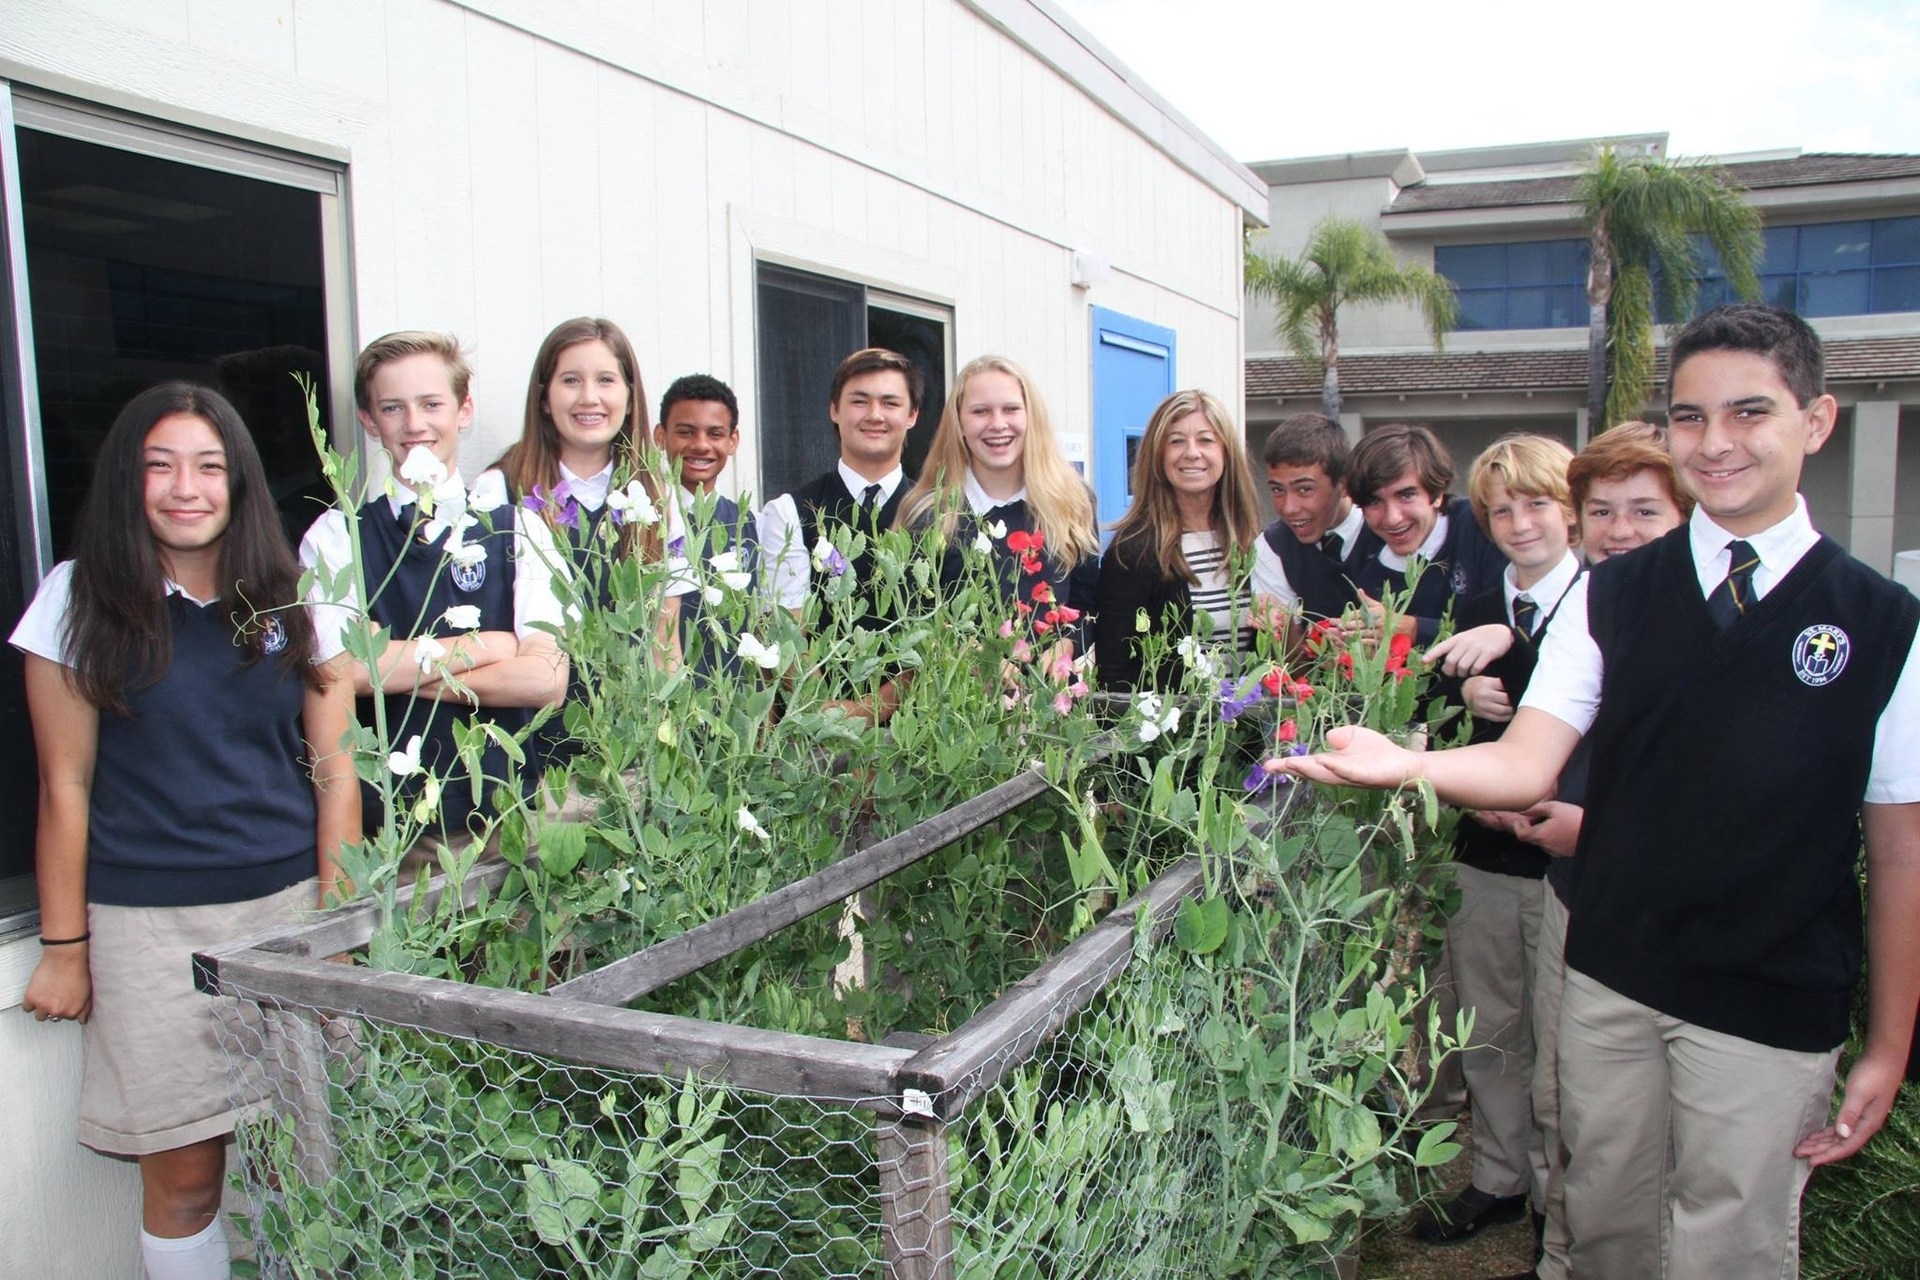 grade 7 students genetics science lesson growing sweat peas